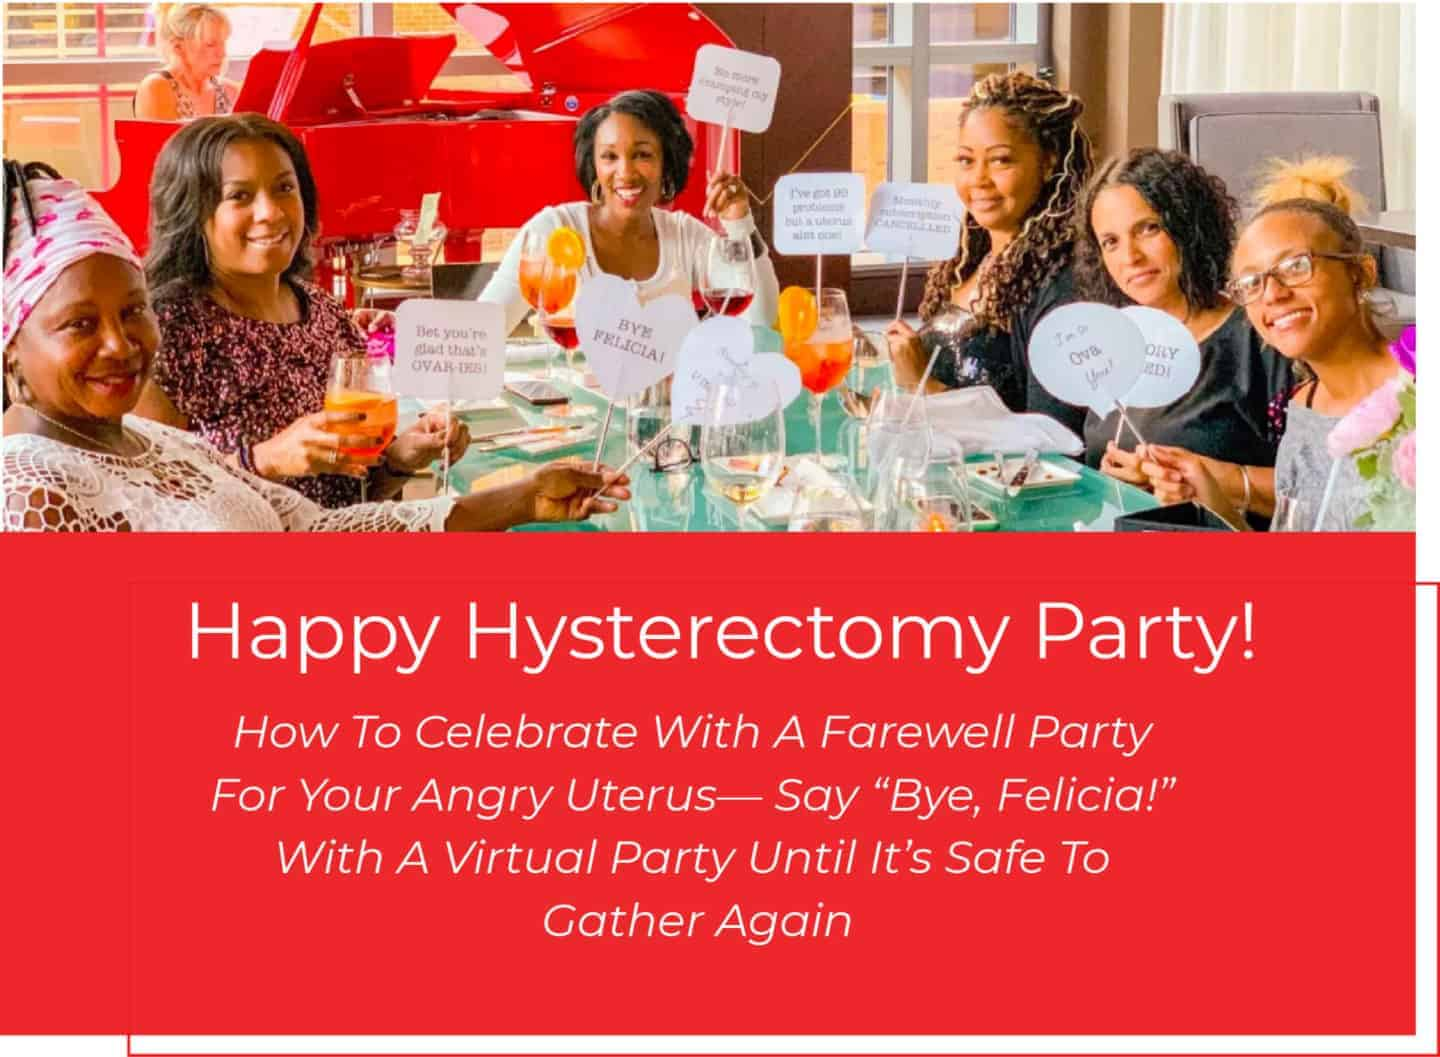 Goodbye Uterus Party & Hysterectomy Party Games: Ideas, Cake, Decorations, Party Favors & Uterus Piñata